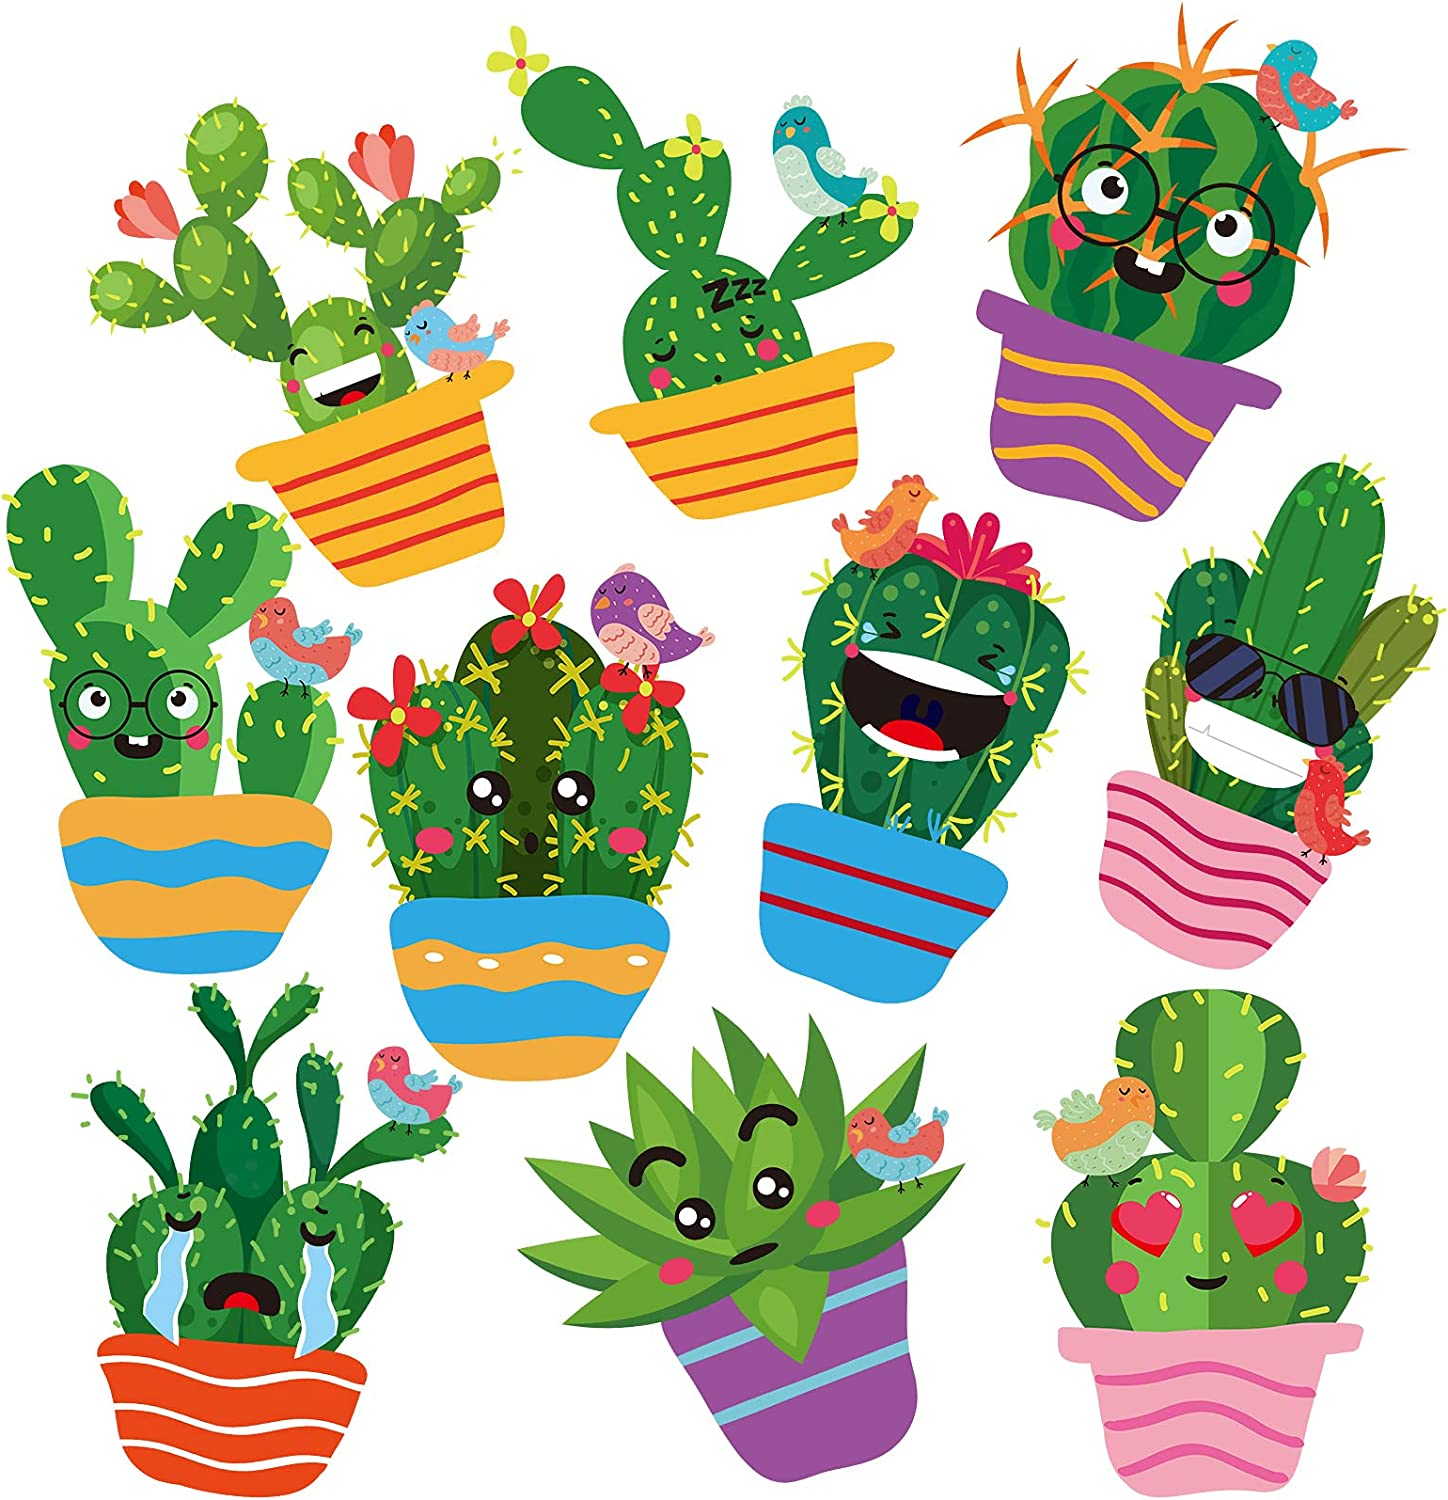 50 Pieces Cactus Cutouts Cactus Theme Bulletin Board Decoration Prickly Cactus Party Cutout Green Cactus Paper-Cut with Glue Point Dot for Fiesta Classroom Bulletin Board Wall Holiday Party Decoration